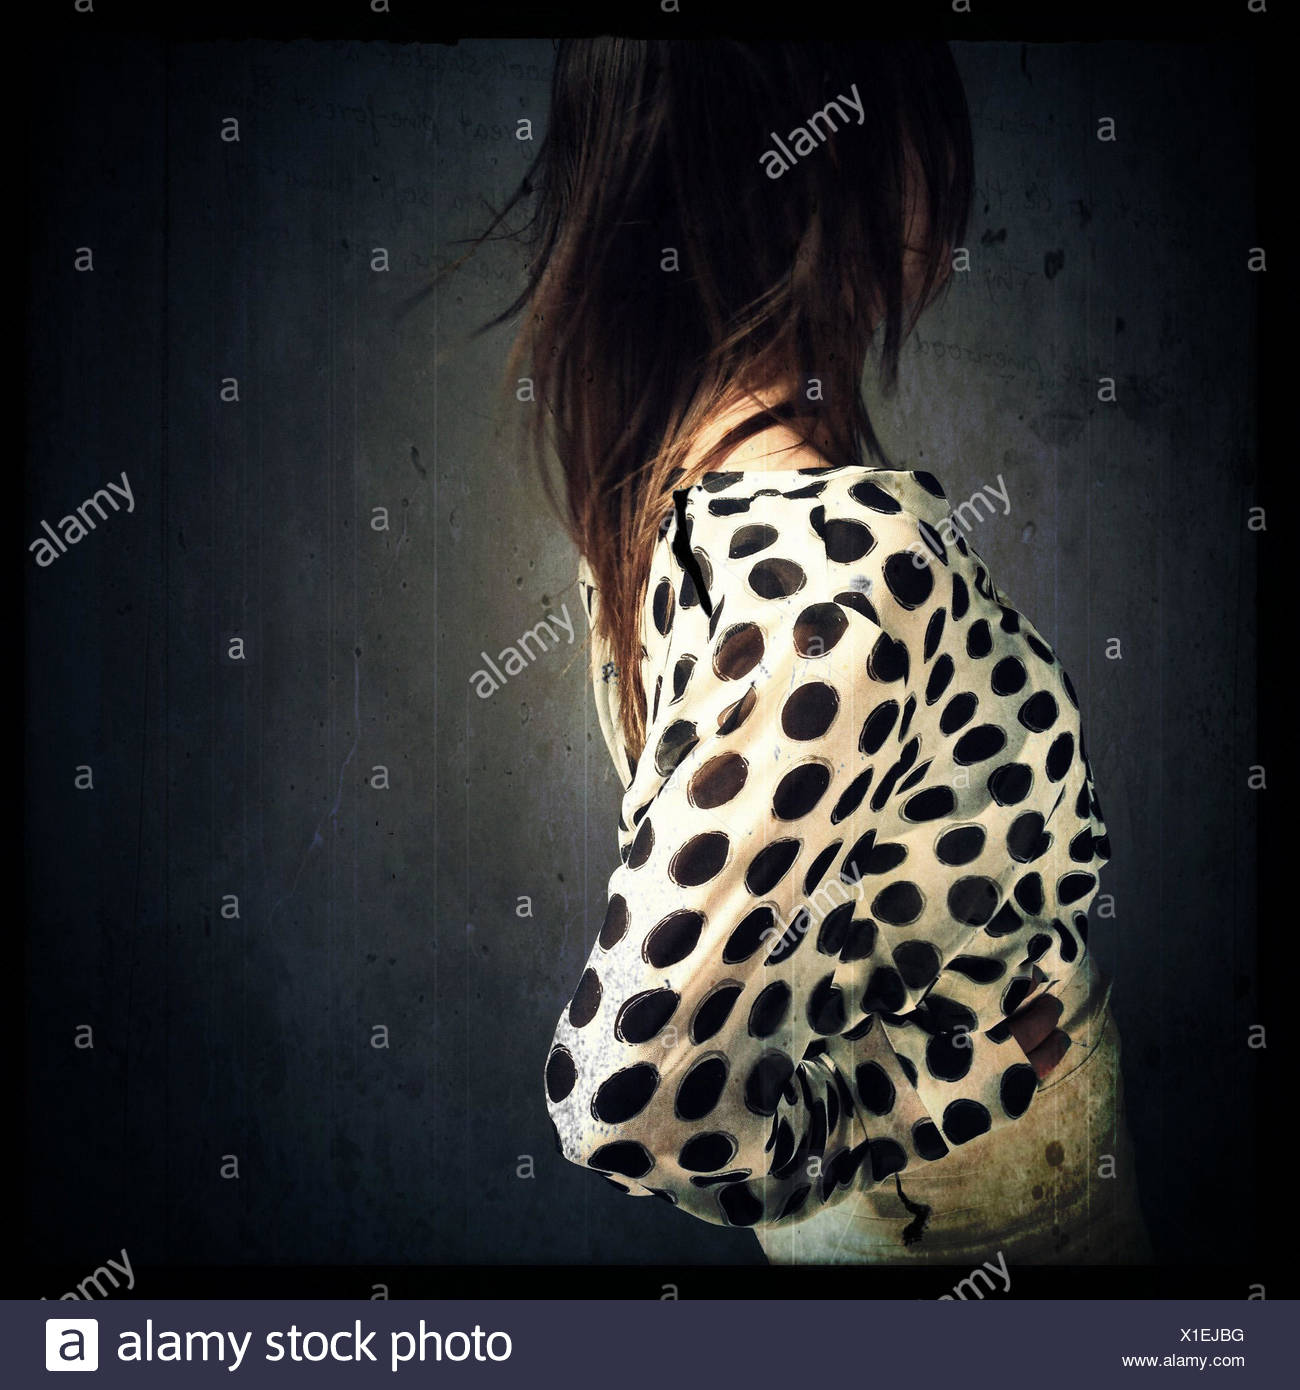 Profile of woman wearing spotted shirt - Stock Image